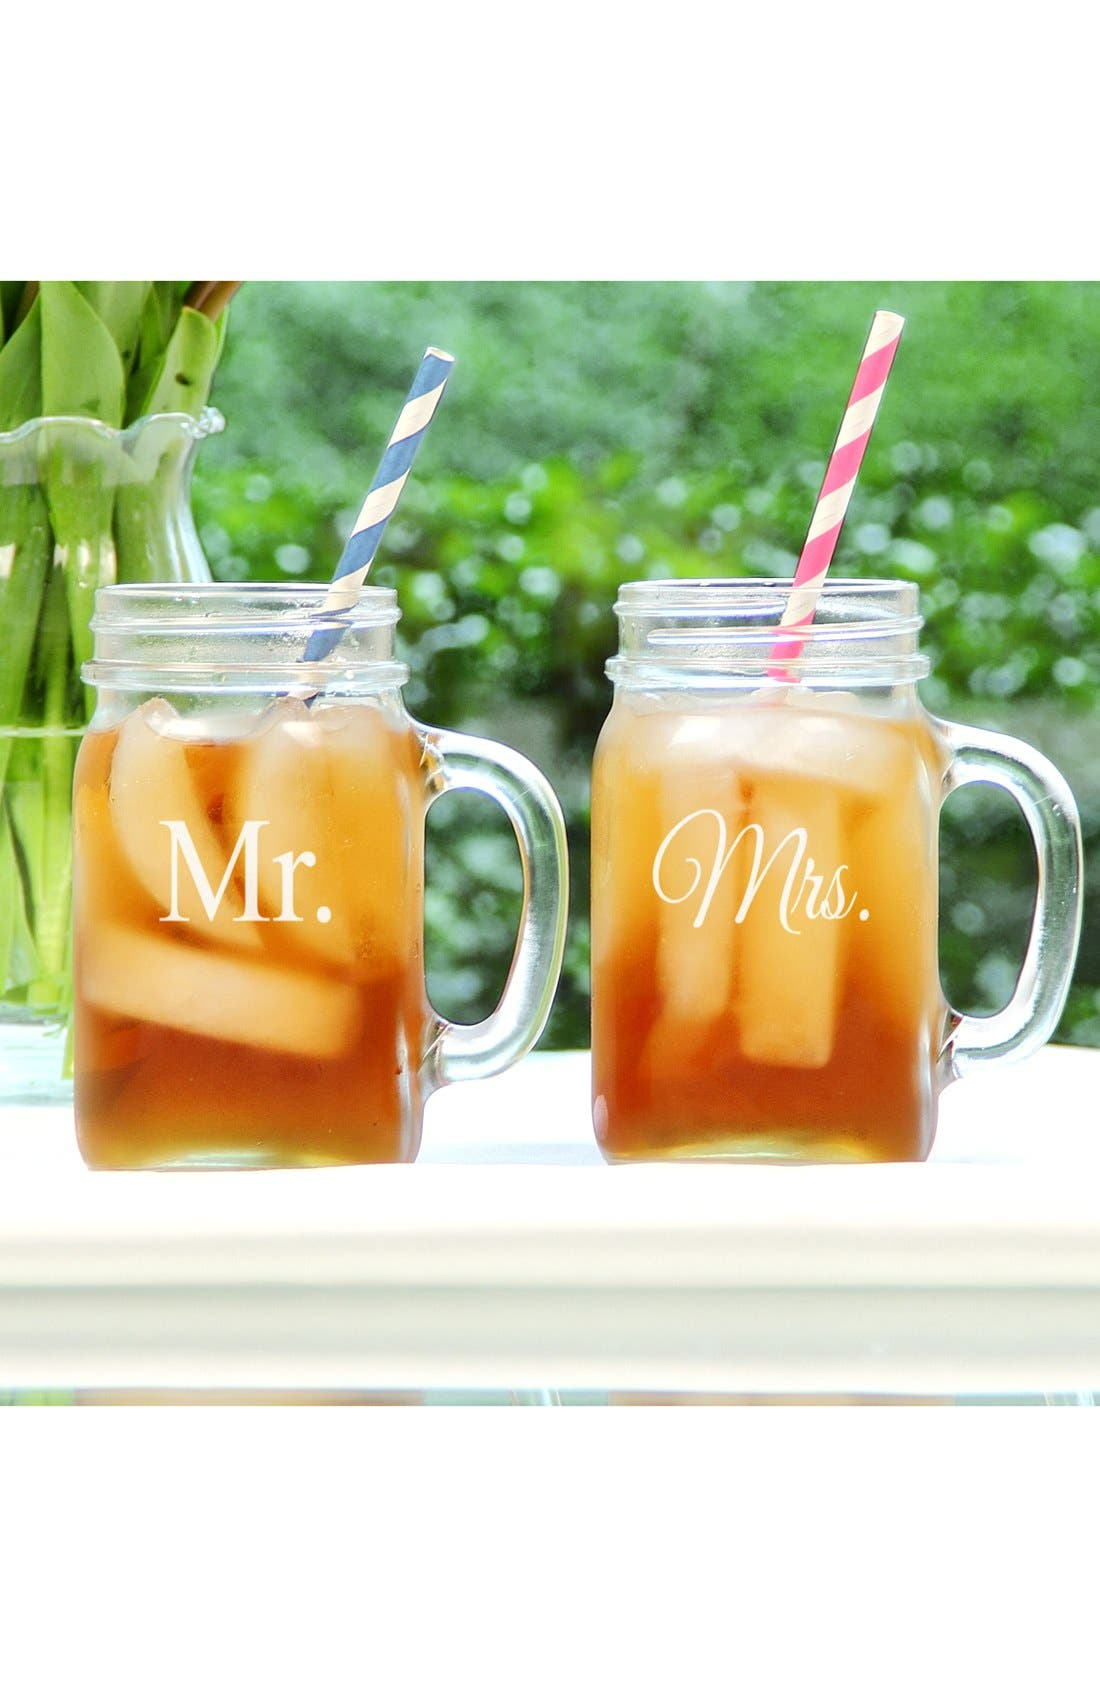 Alternate Image 1 Selected - Cathy's Concepts 'For The Couple' Mason Jar Glasses with Handles (Set of 2)